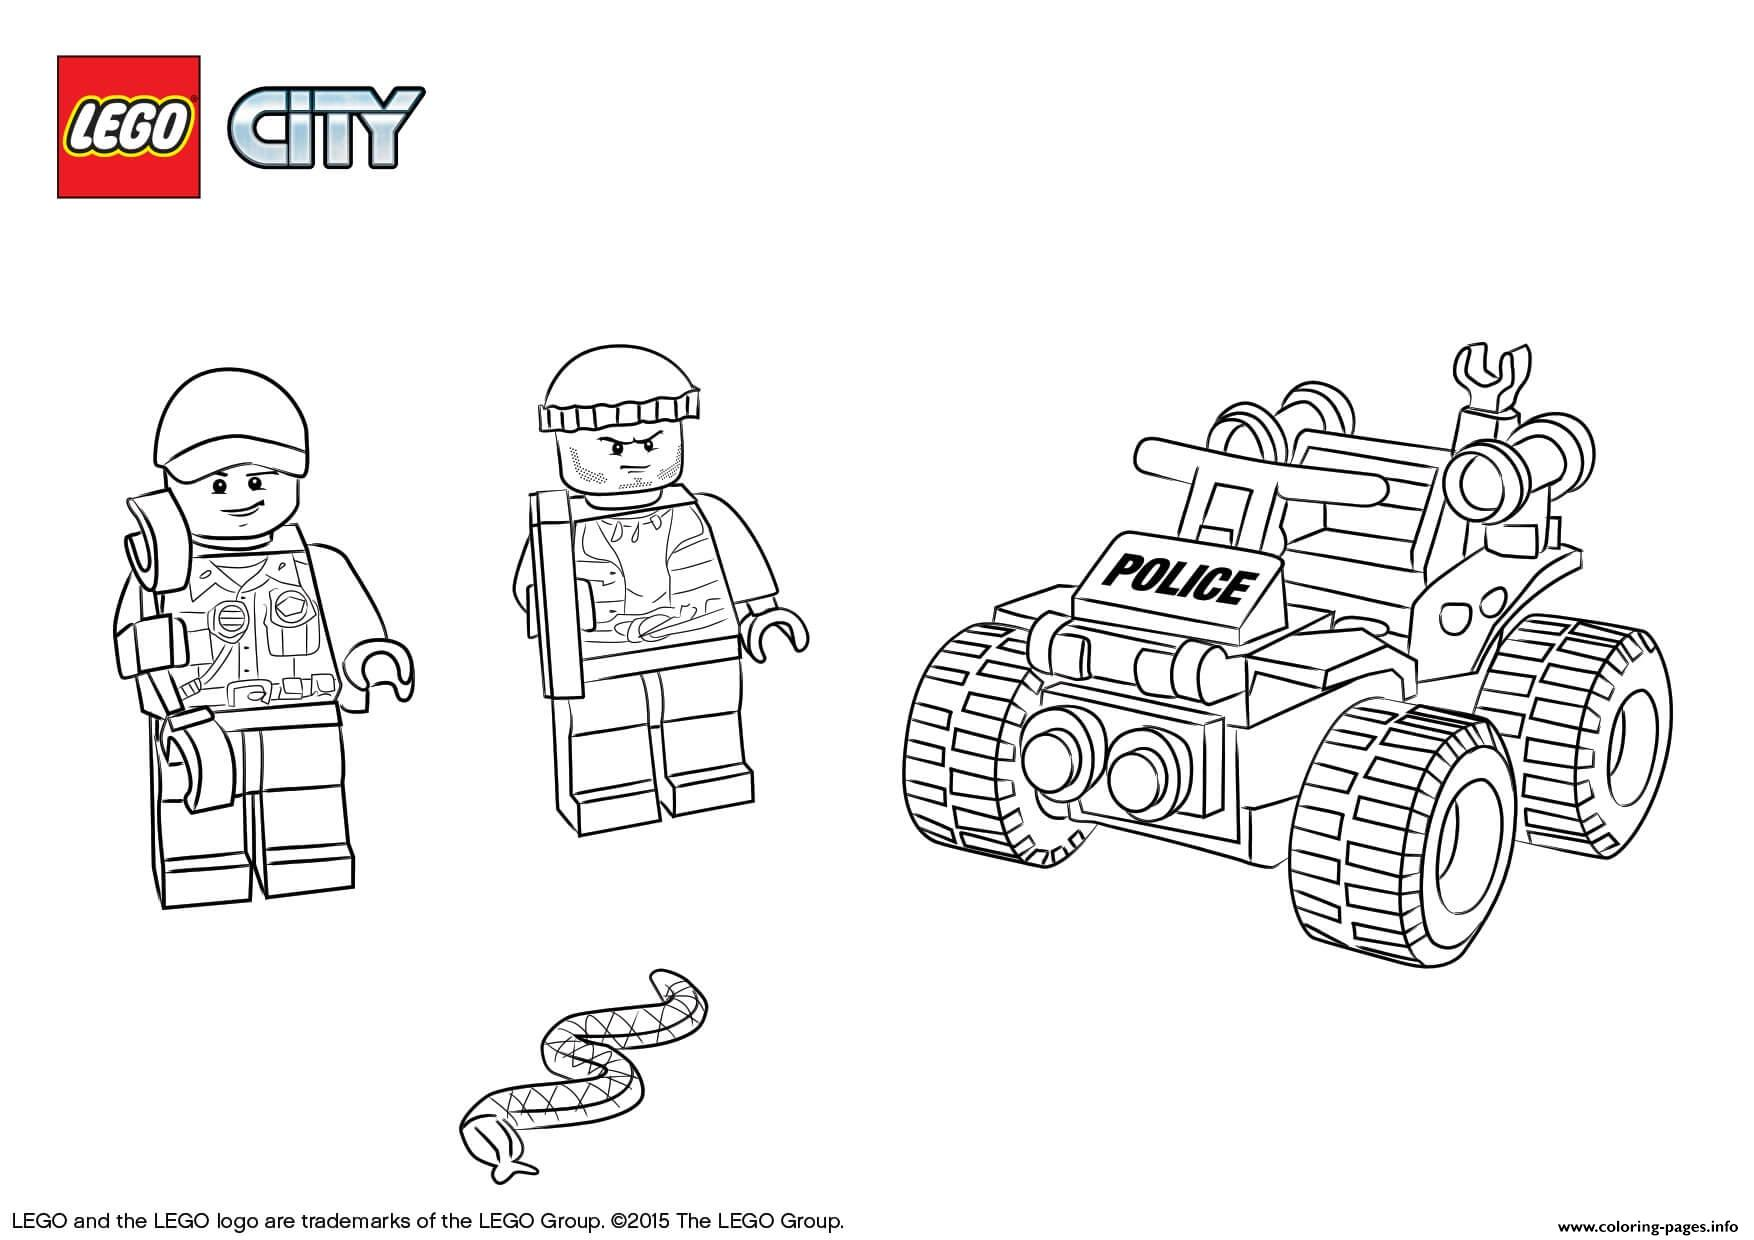 Lego City Atv Patrol Police Coloring Pages Printable